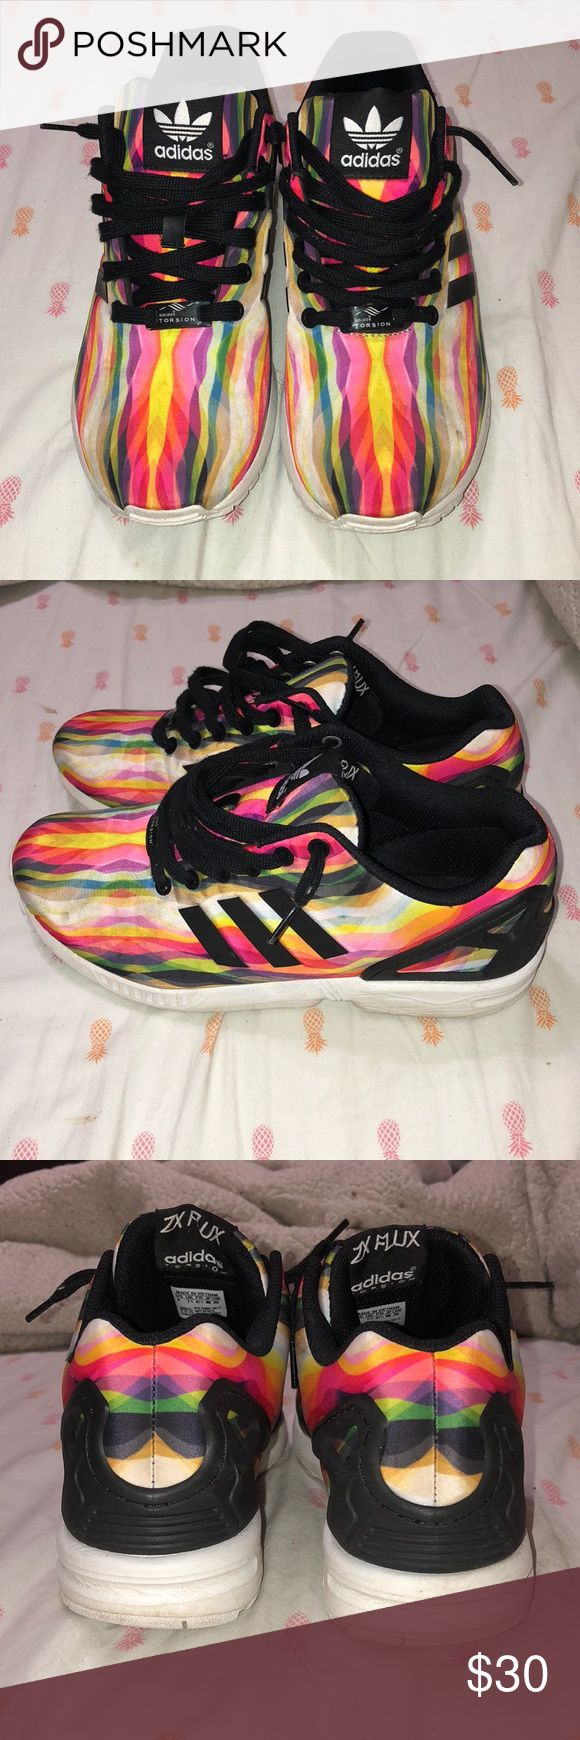 Adidas Torsion ZX Flux Size 9 Great condition. Please make an offer! adidas Shoes Sneakers